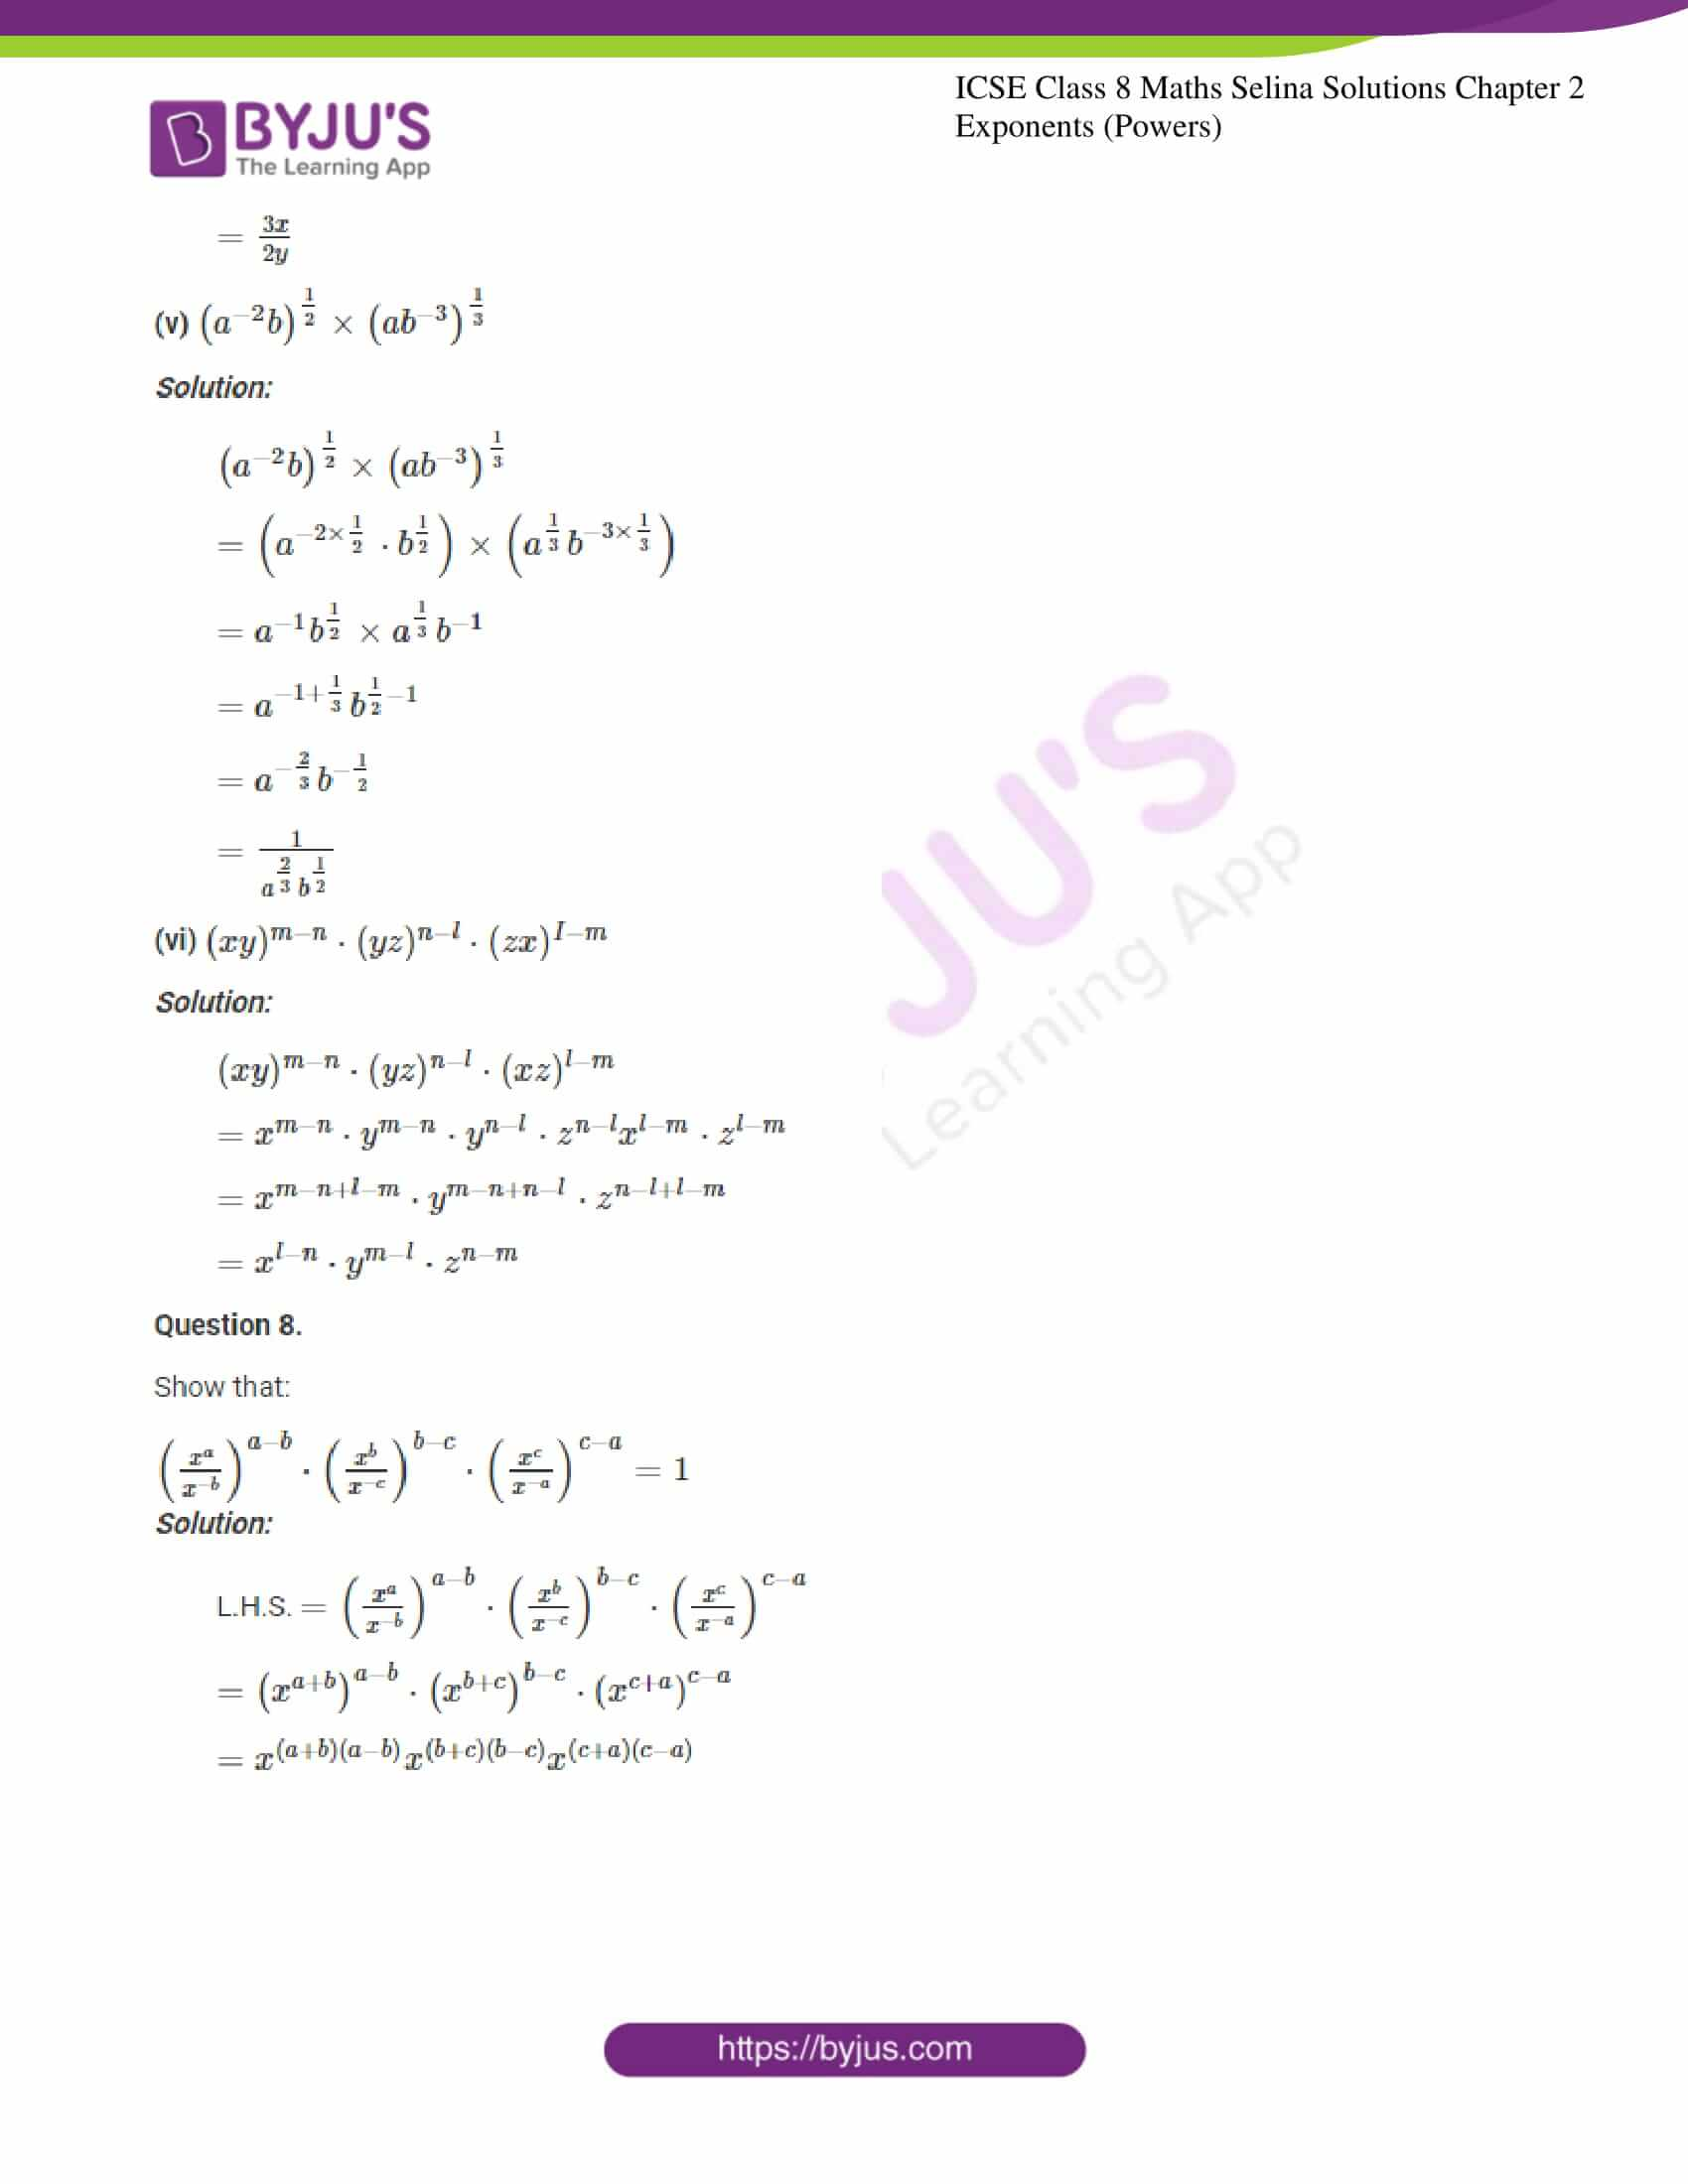 icse april7 class 8 maths selina solutions chapter 2 exponents powers 14